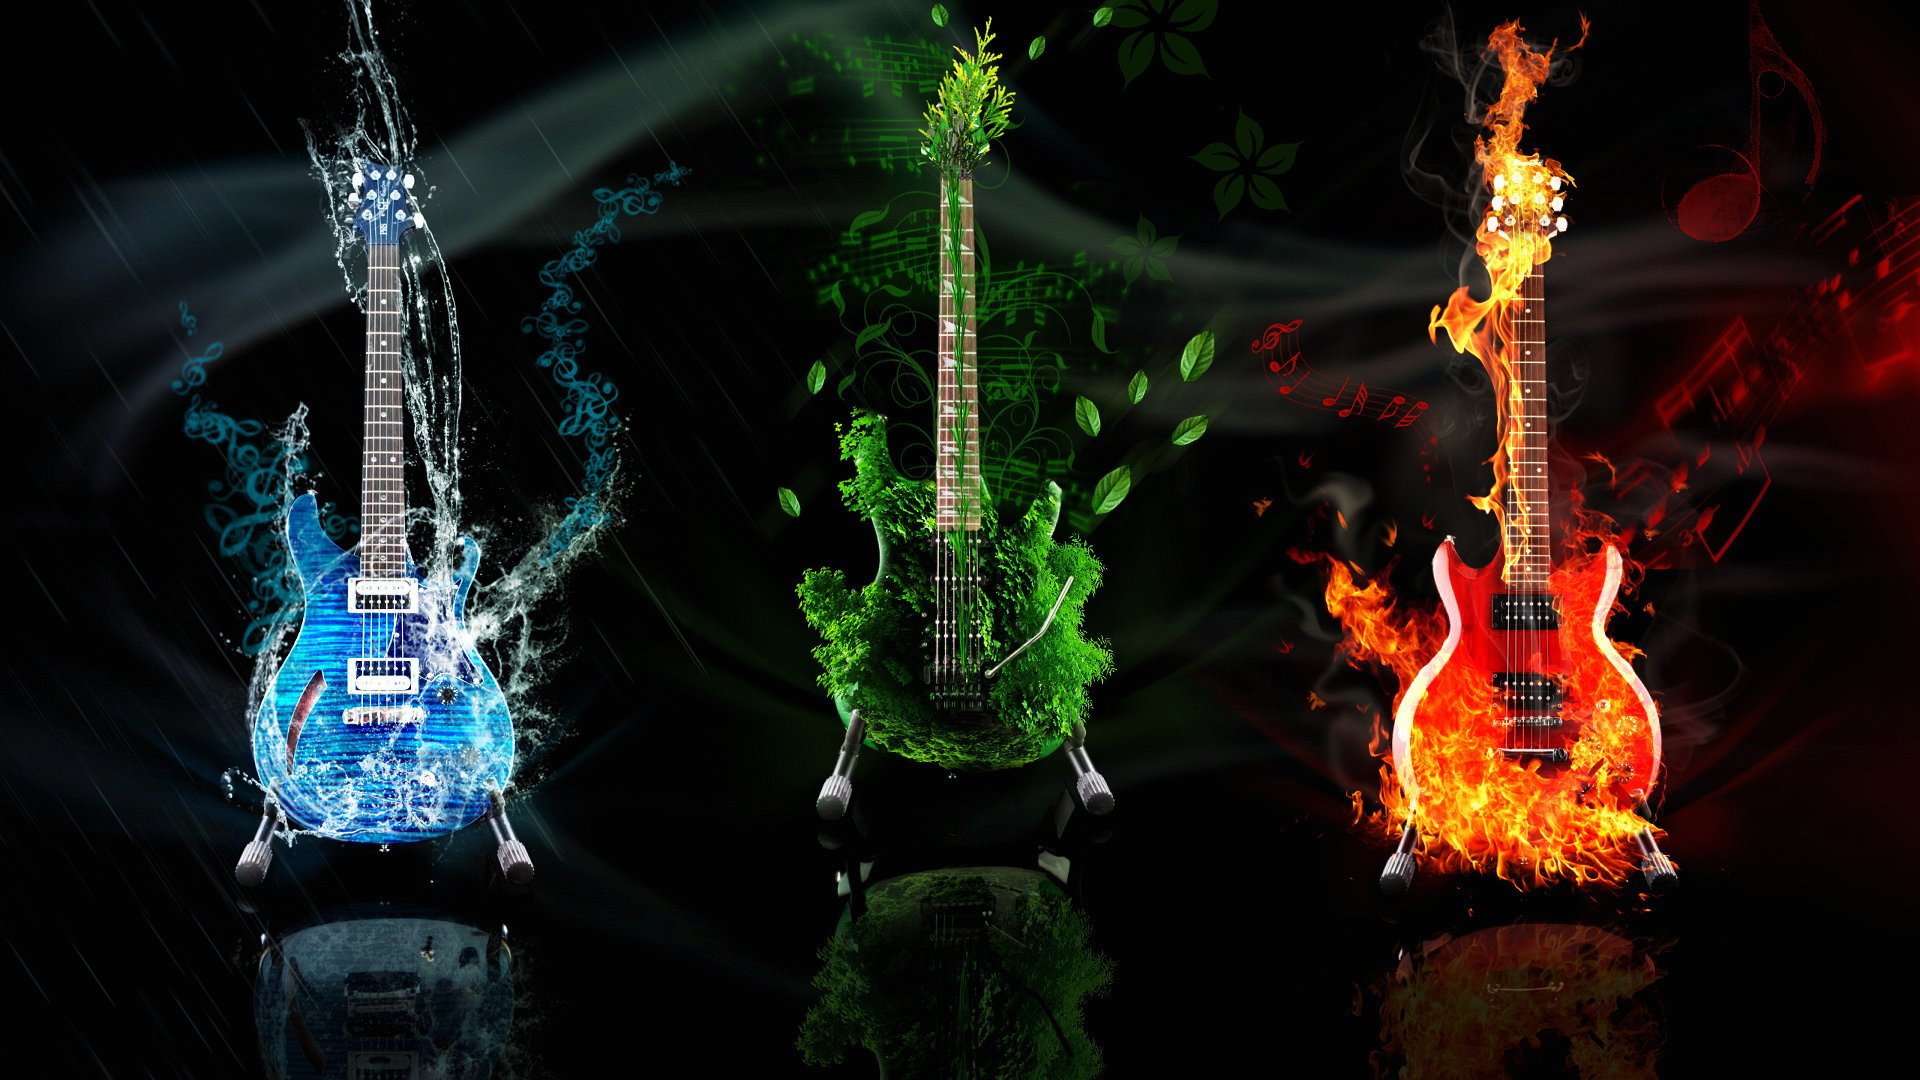 Gallery For gt Awesome Music Abstract Wallpapers 1920x1080